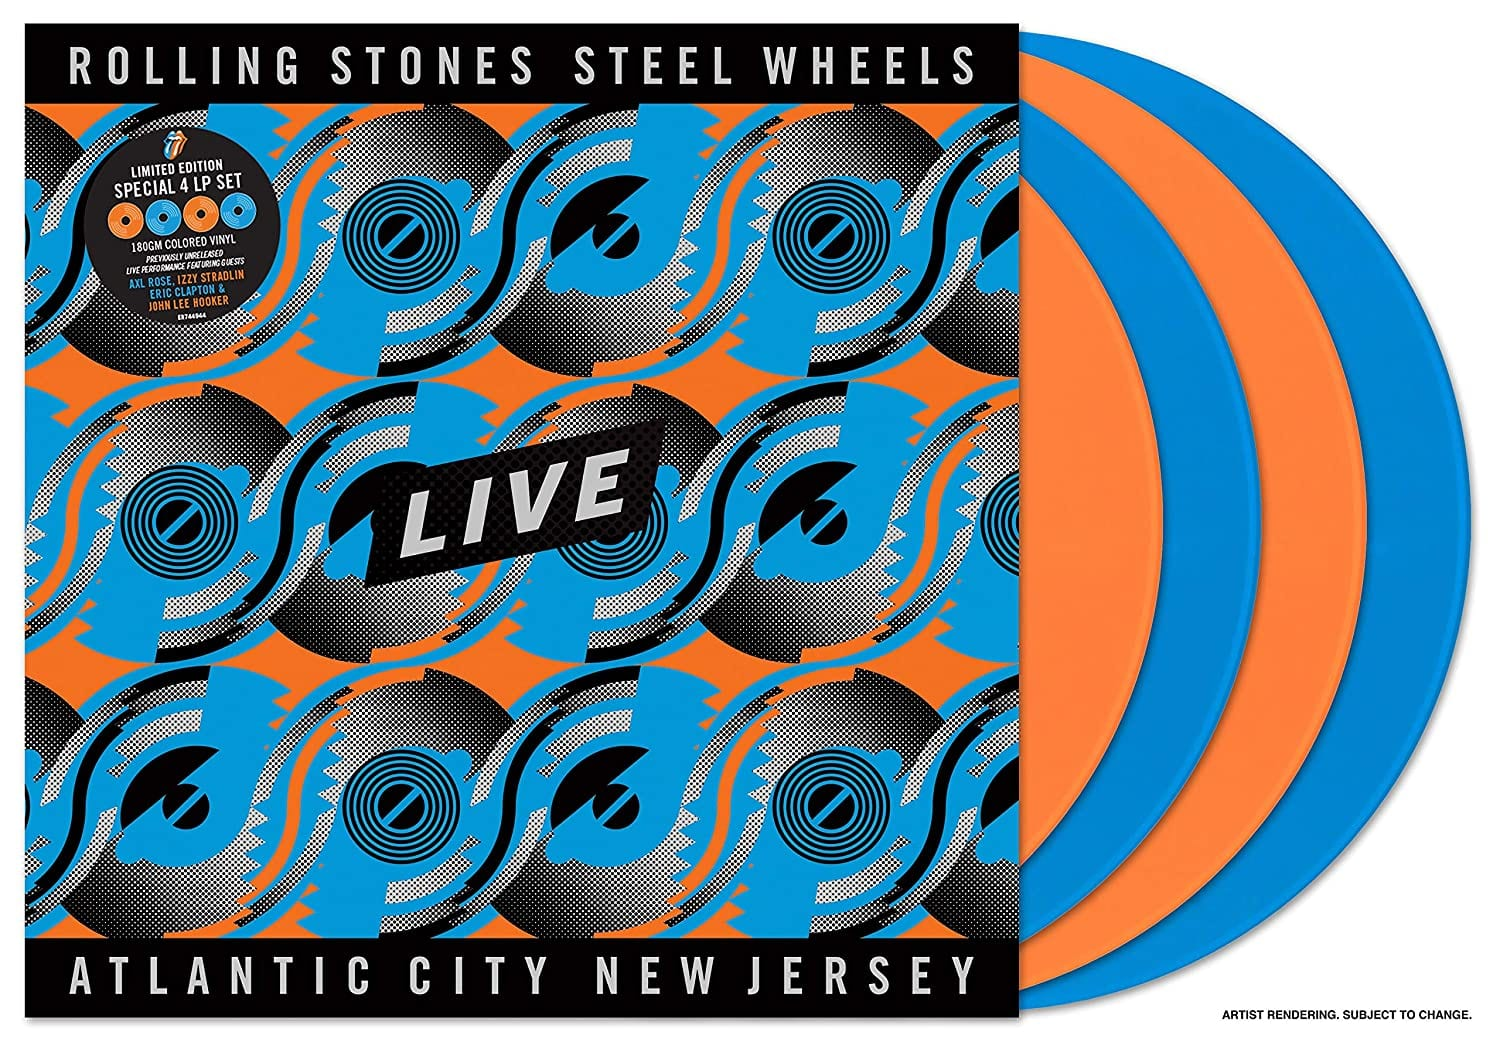 Rolling Stones, The - Steel Wheels Live [4LP] (Live From Atlantic City, NJ, 1989 / North American Version, Tangerine/Sky Blue Colored 180 Gram Vinyl, limited) - Urban Vinyl | Records, Headphones, and more.